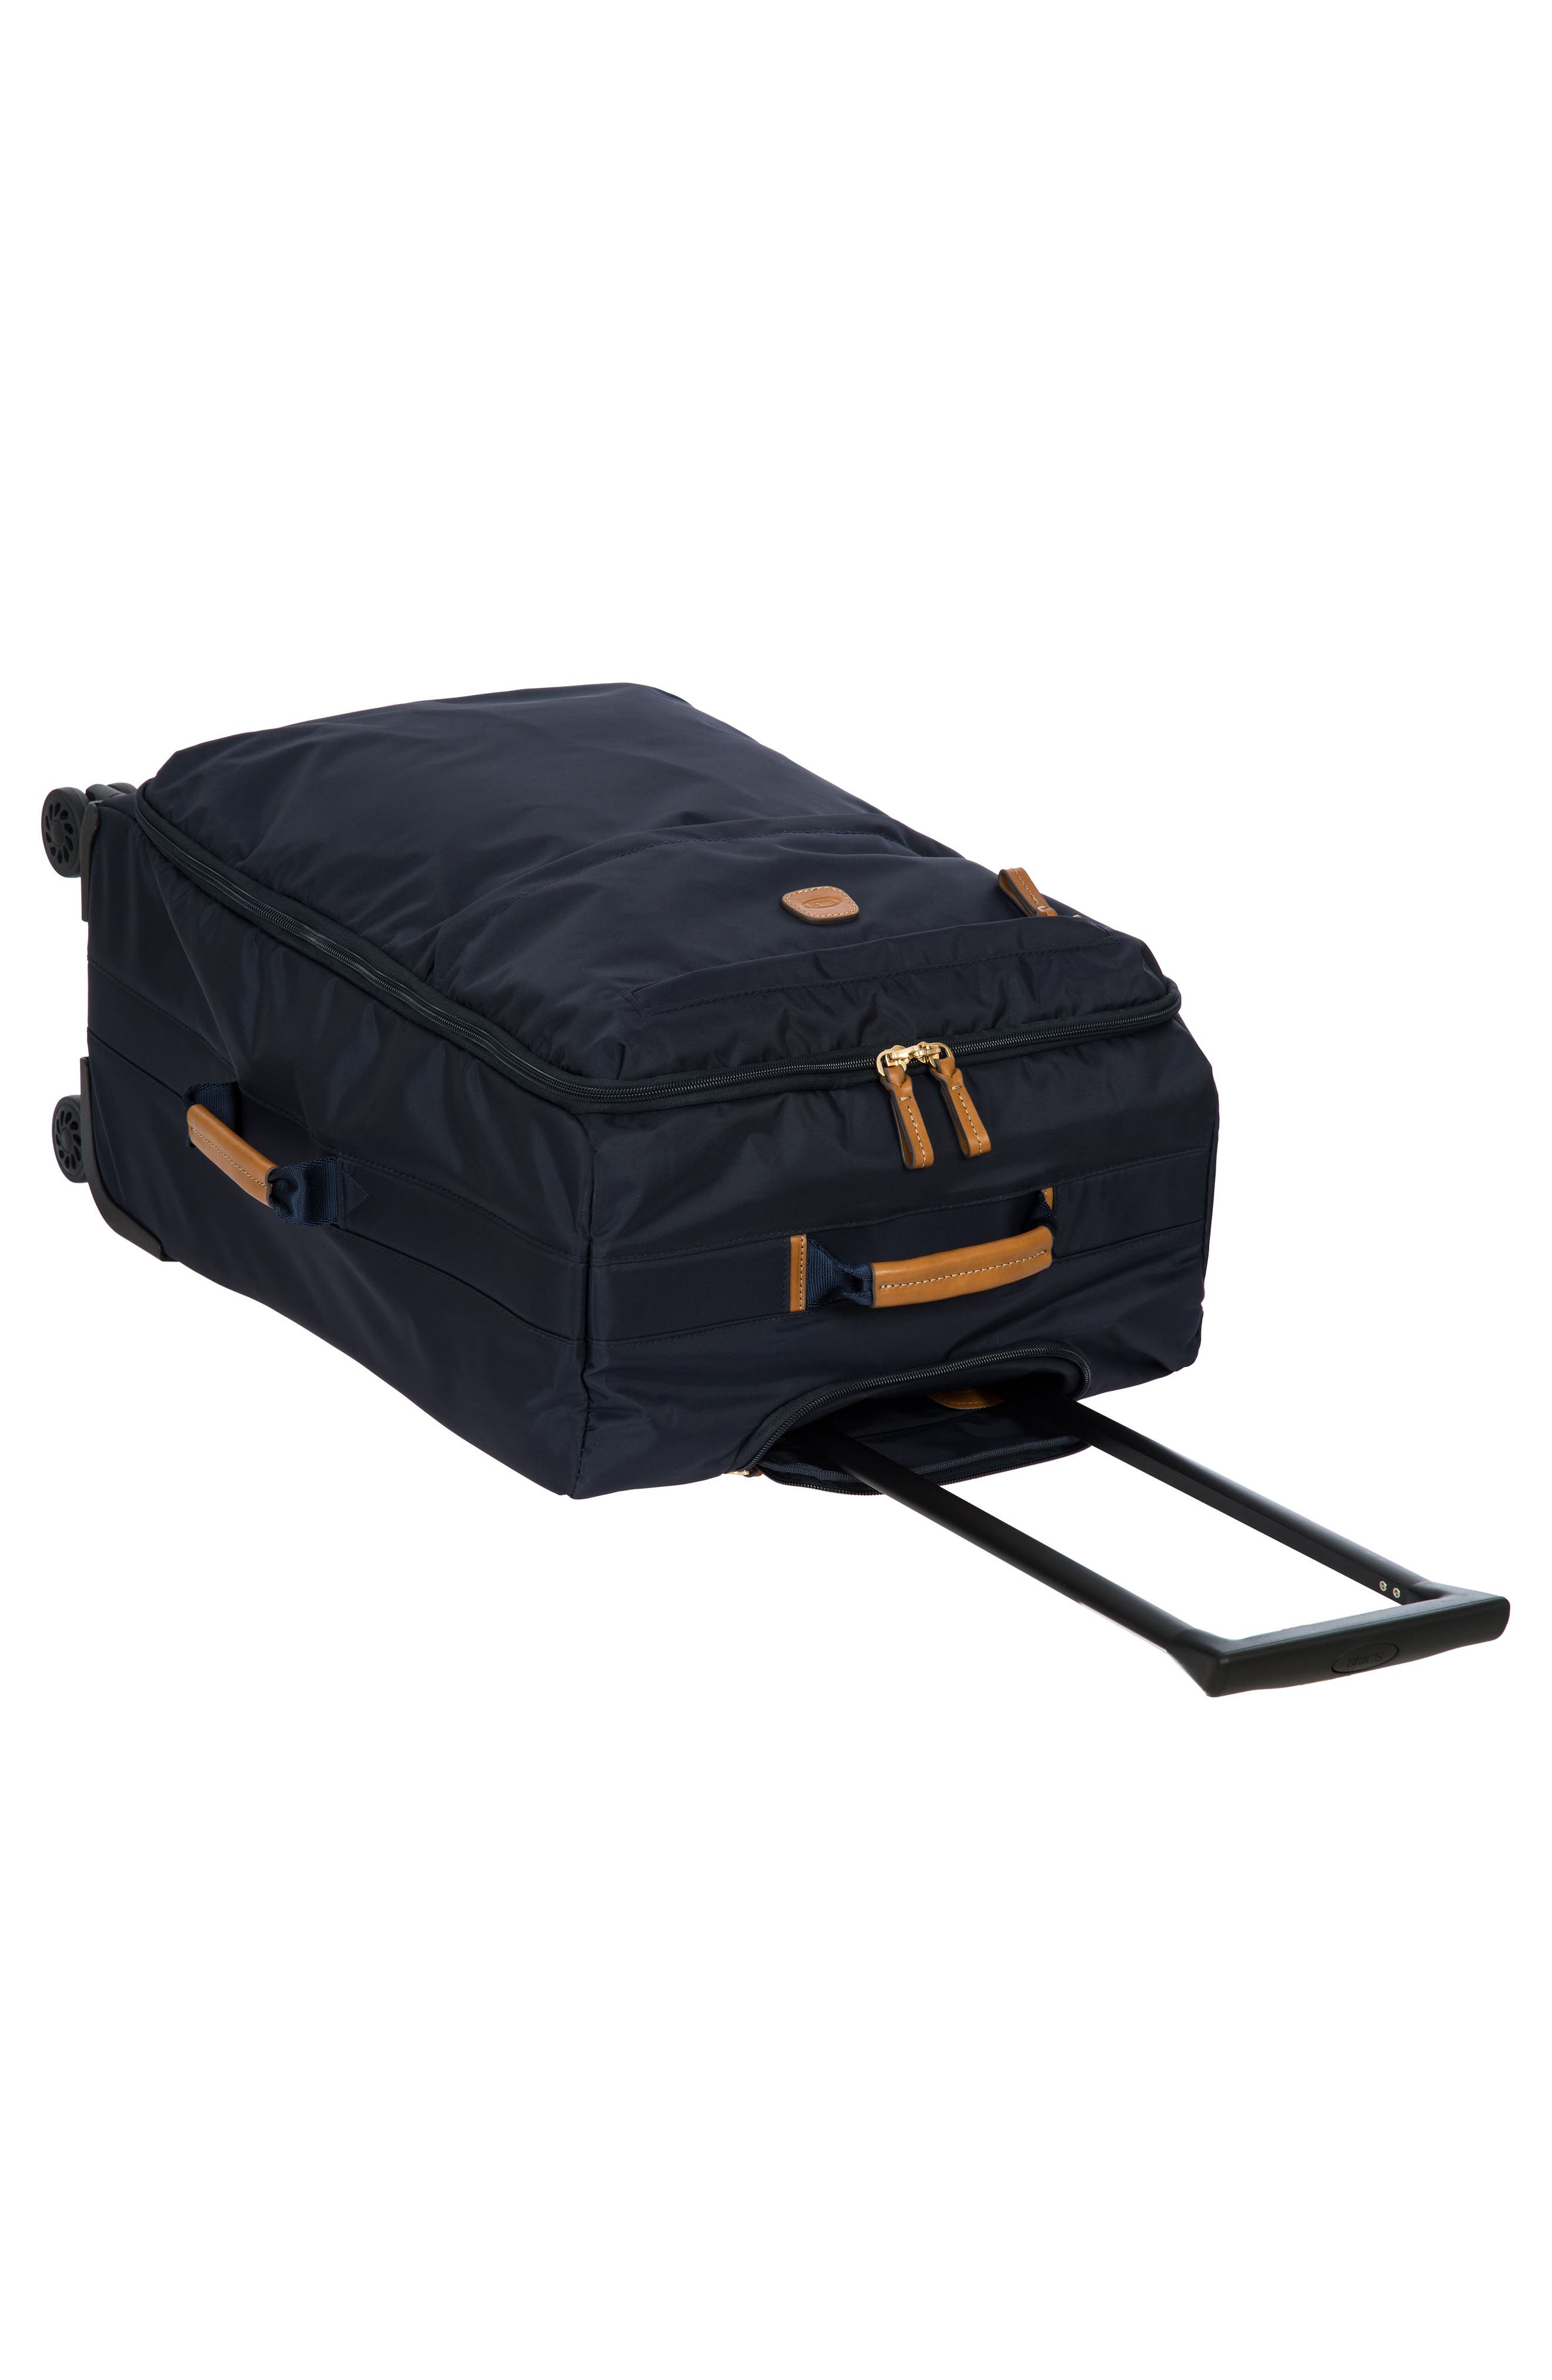 X-Bag 25-Inch Spinner Suitcase,                             Alternate thumbnail 8, color,                             Navy